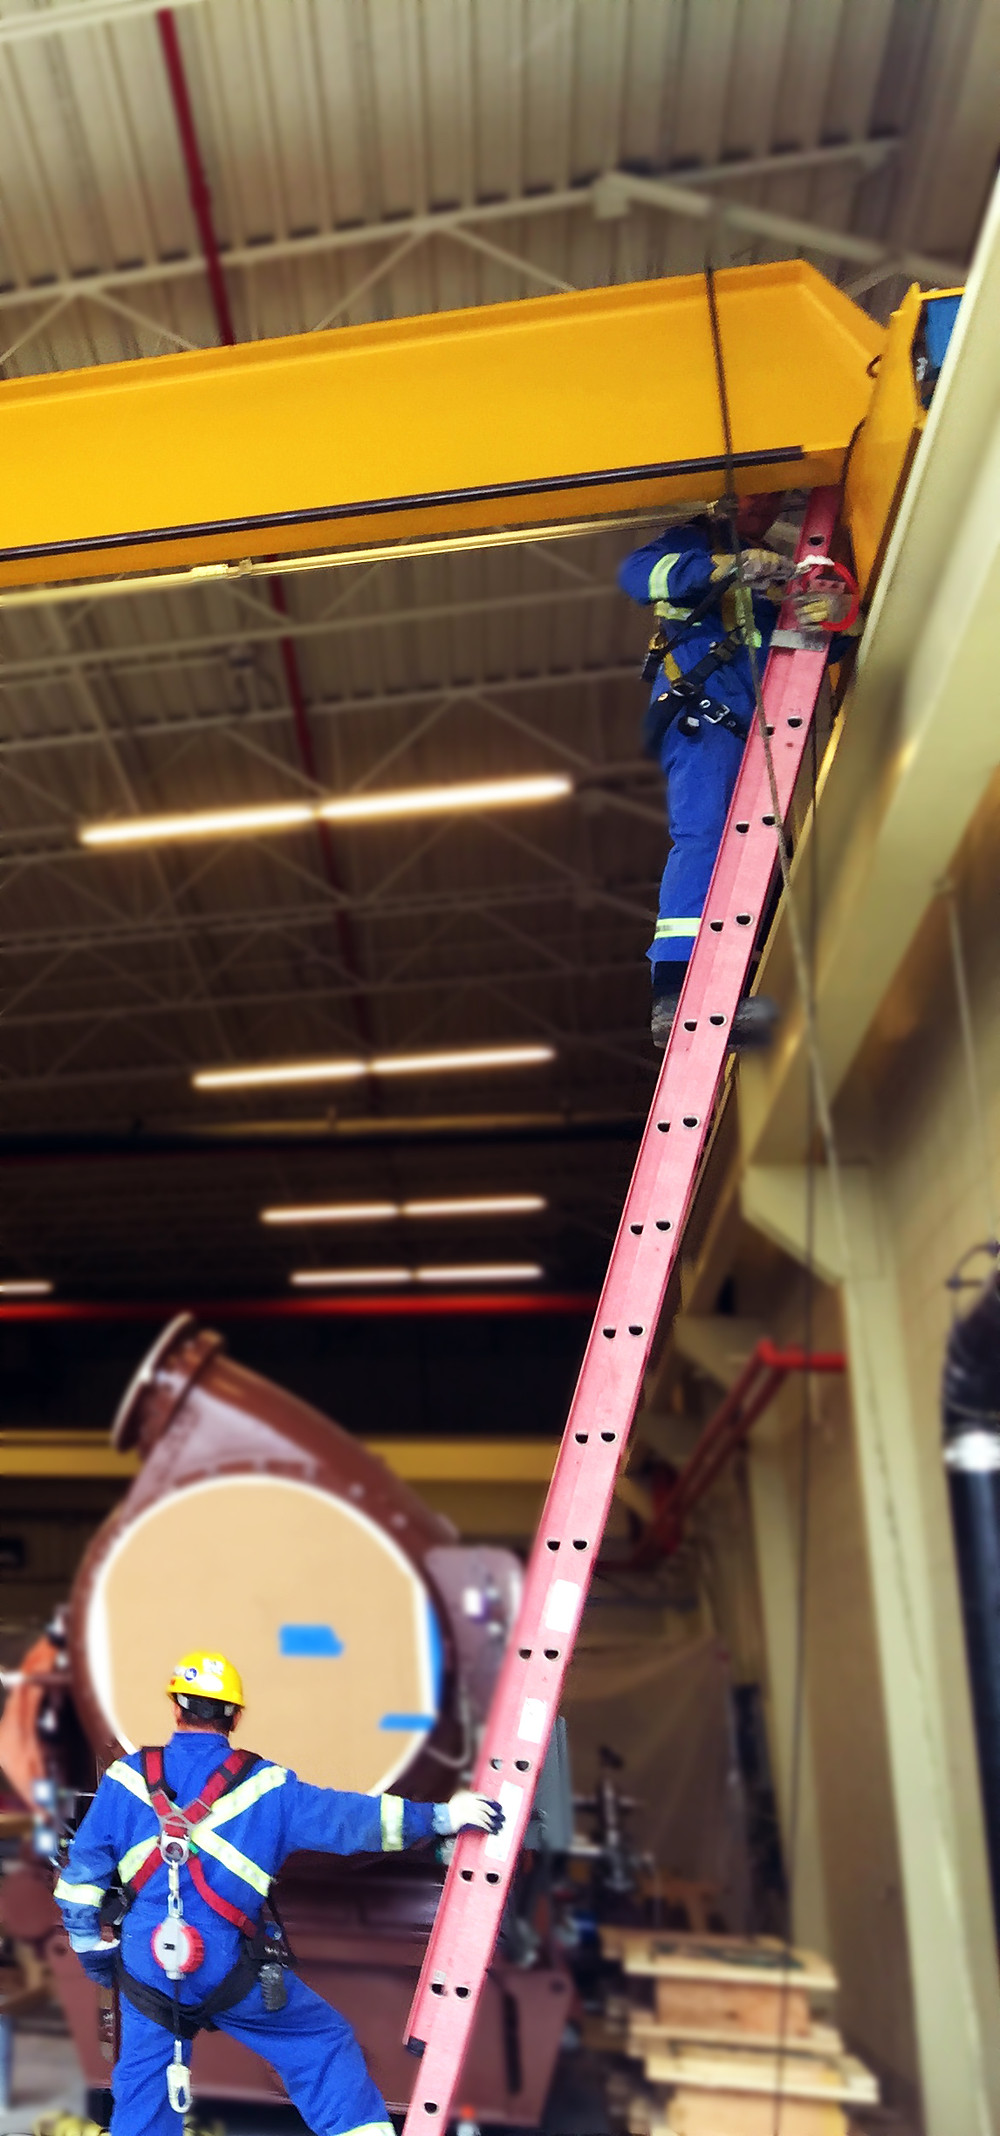 Kristian Electric technicians performing preventative maintenance on an overhead bridge crane.